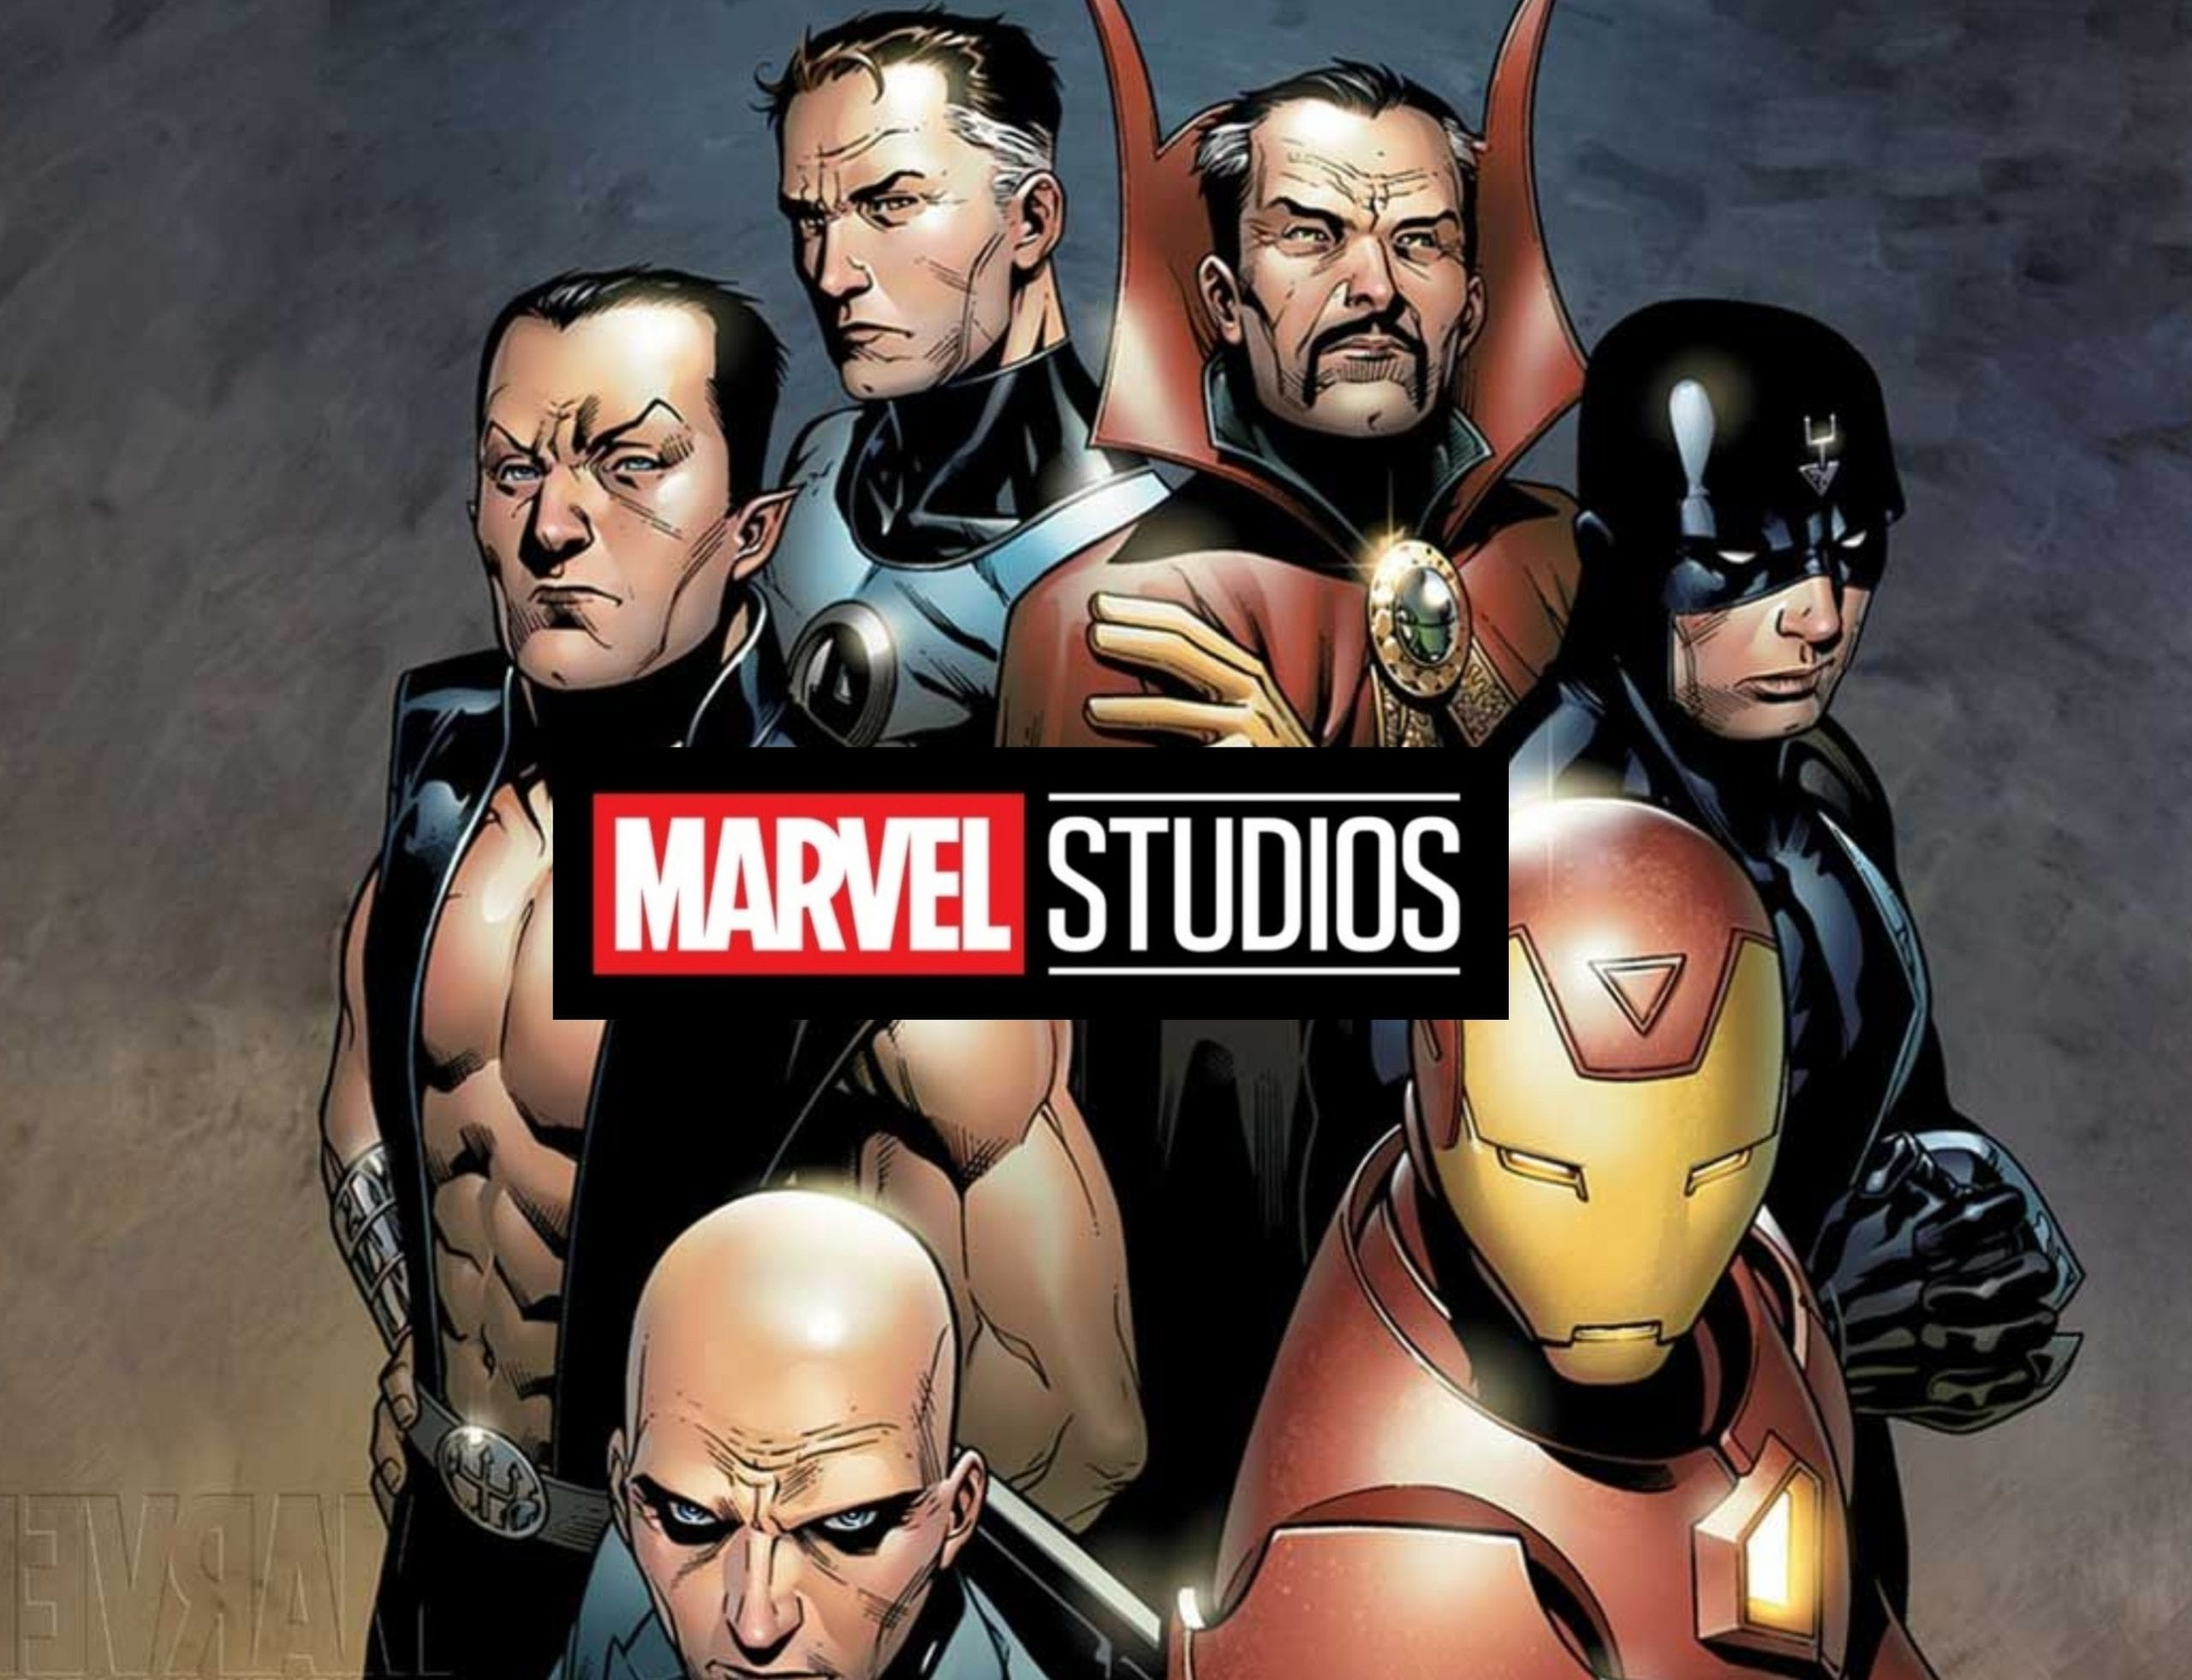 Report: Marvel Studios is looking to bring the Illuminati to the MCU